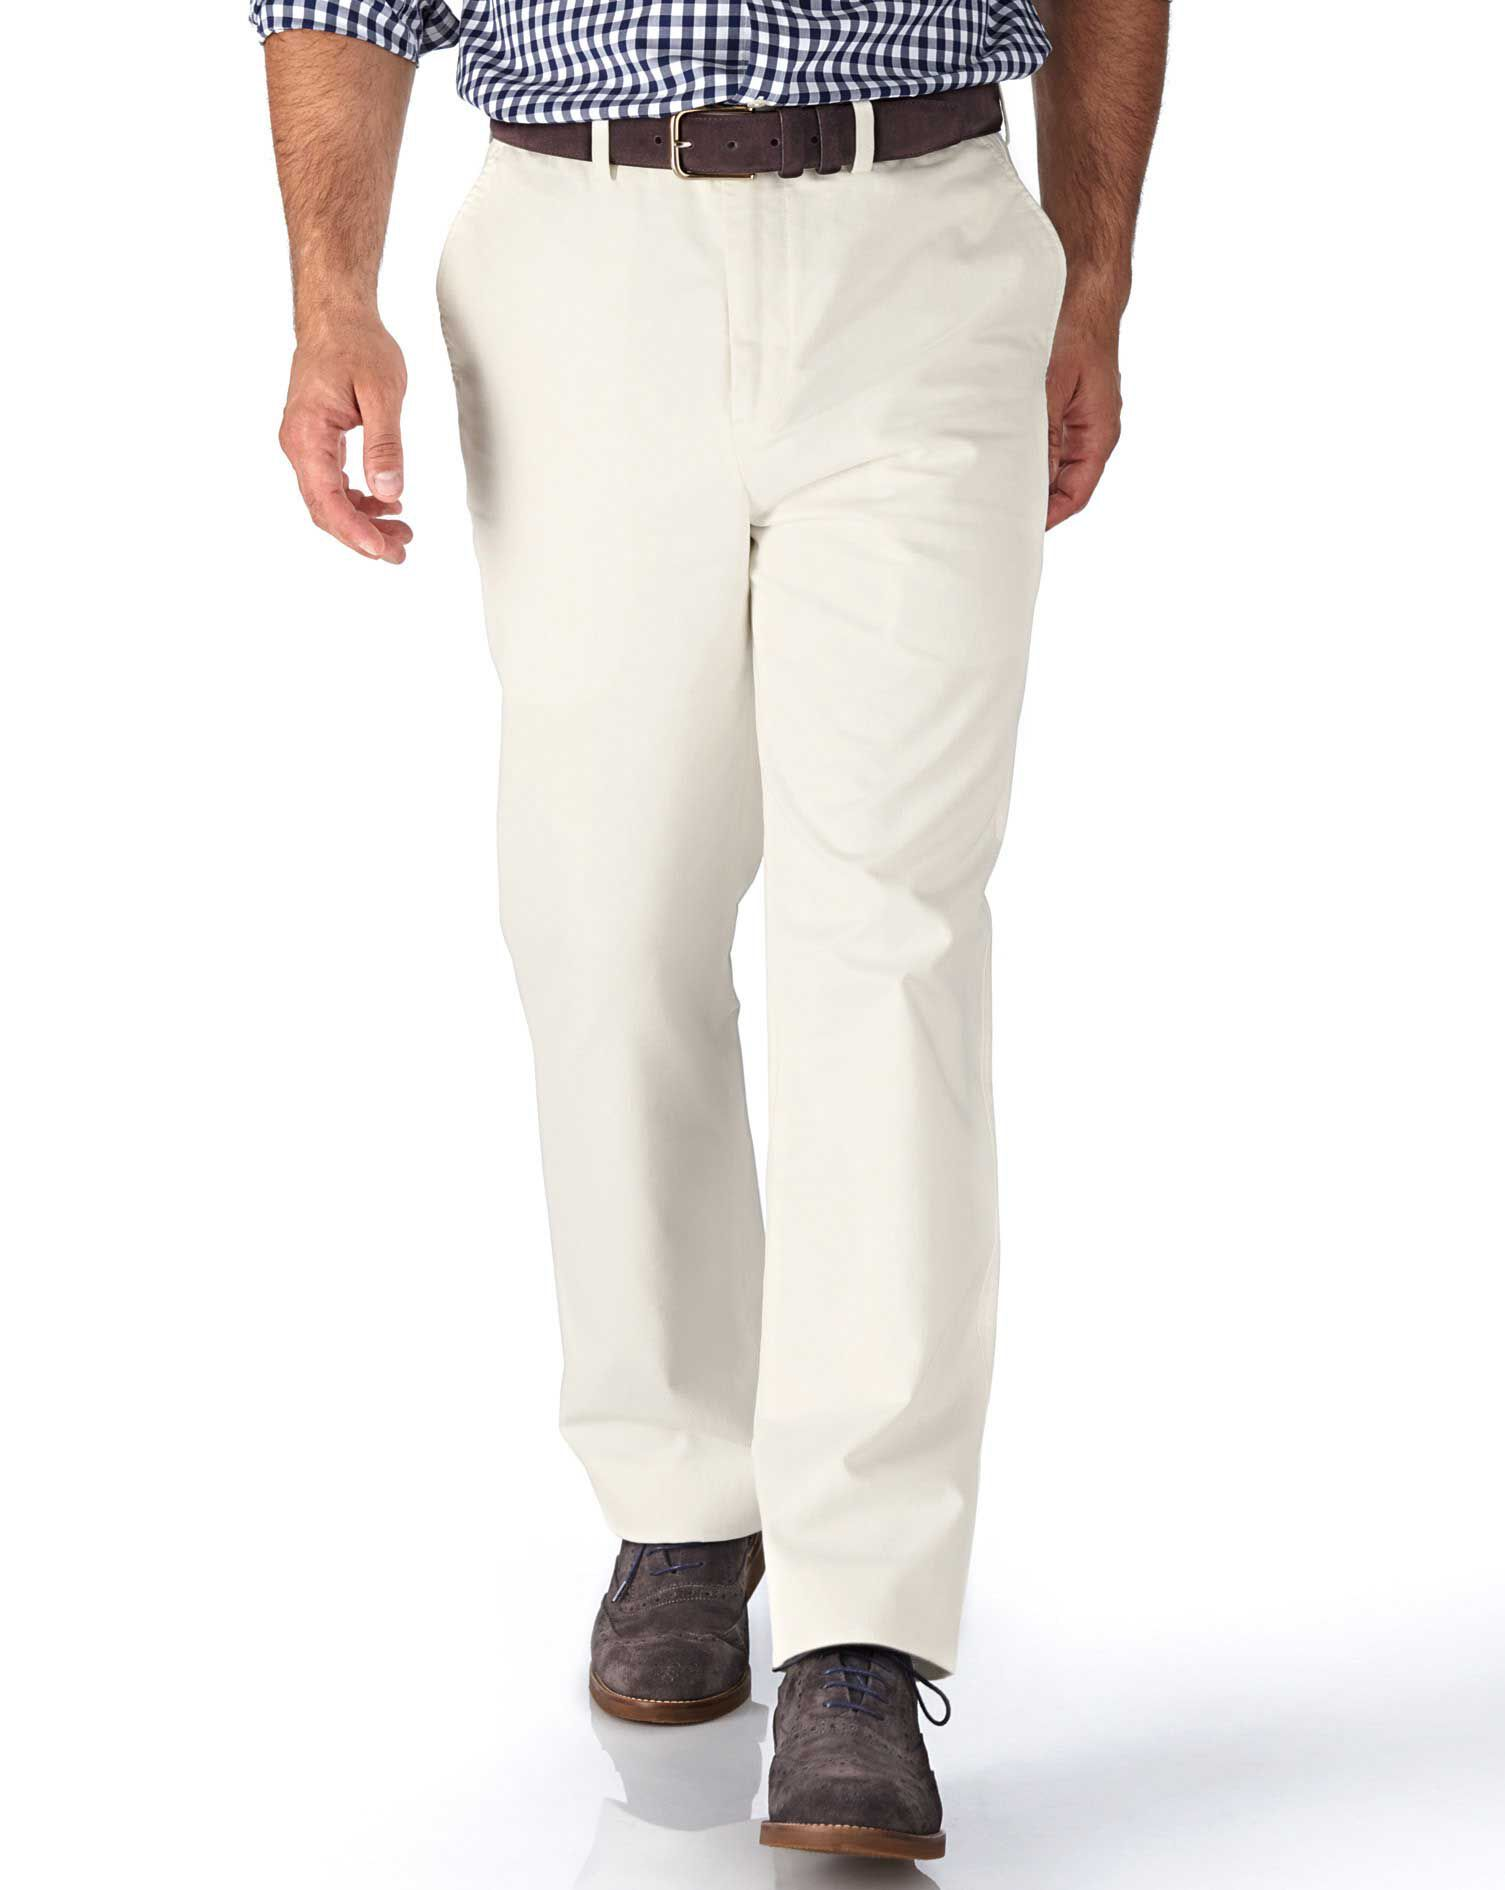 White Classic Fit Flat Front Weekend Cotton Chino Trousers Size W34 L30 by Charles Tyrwhitt